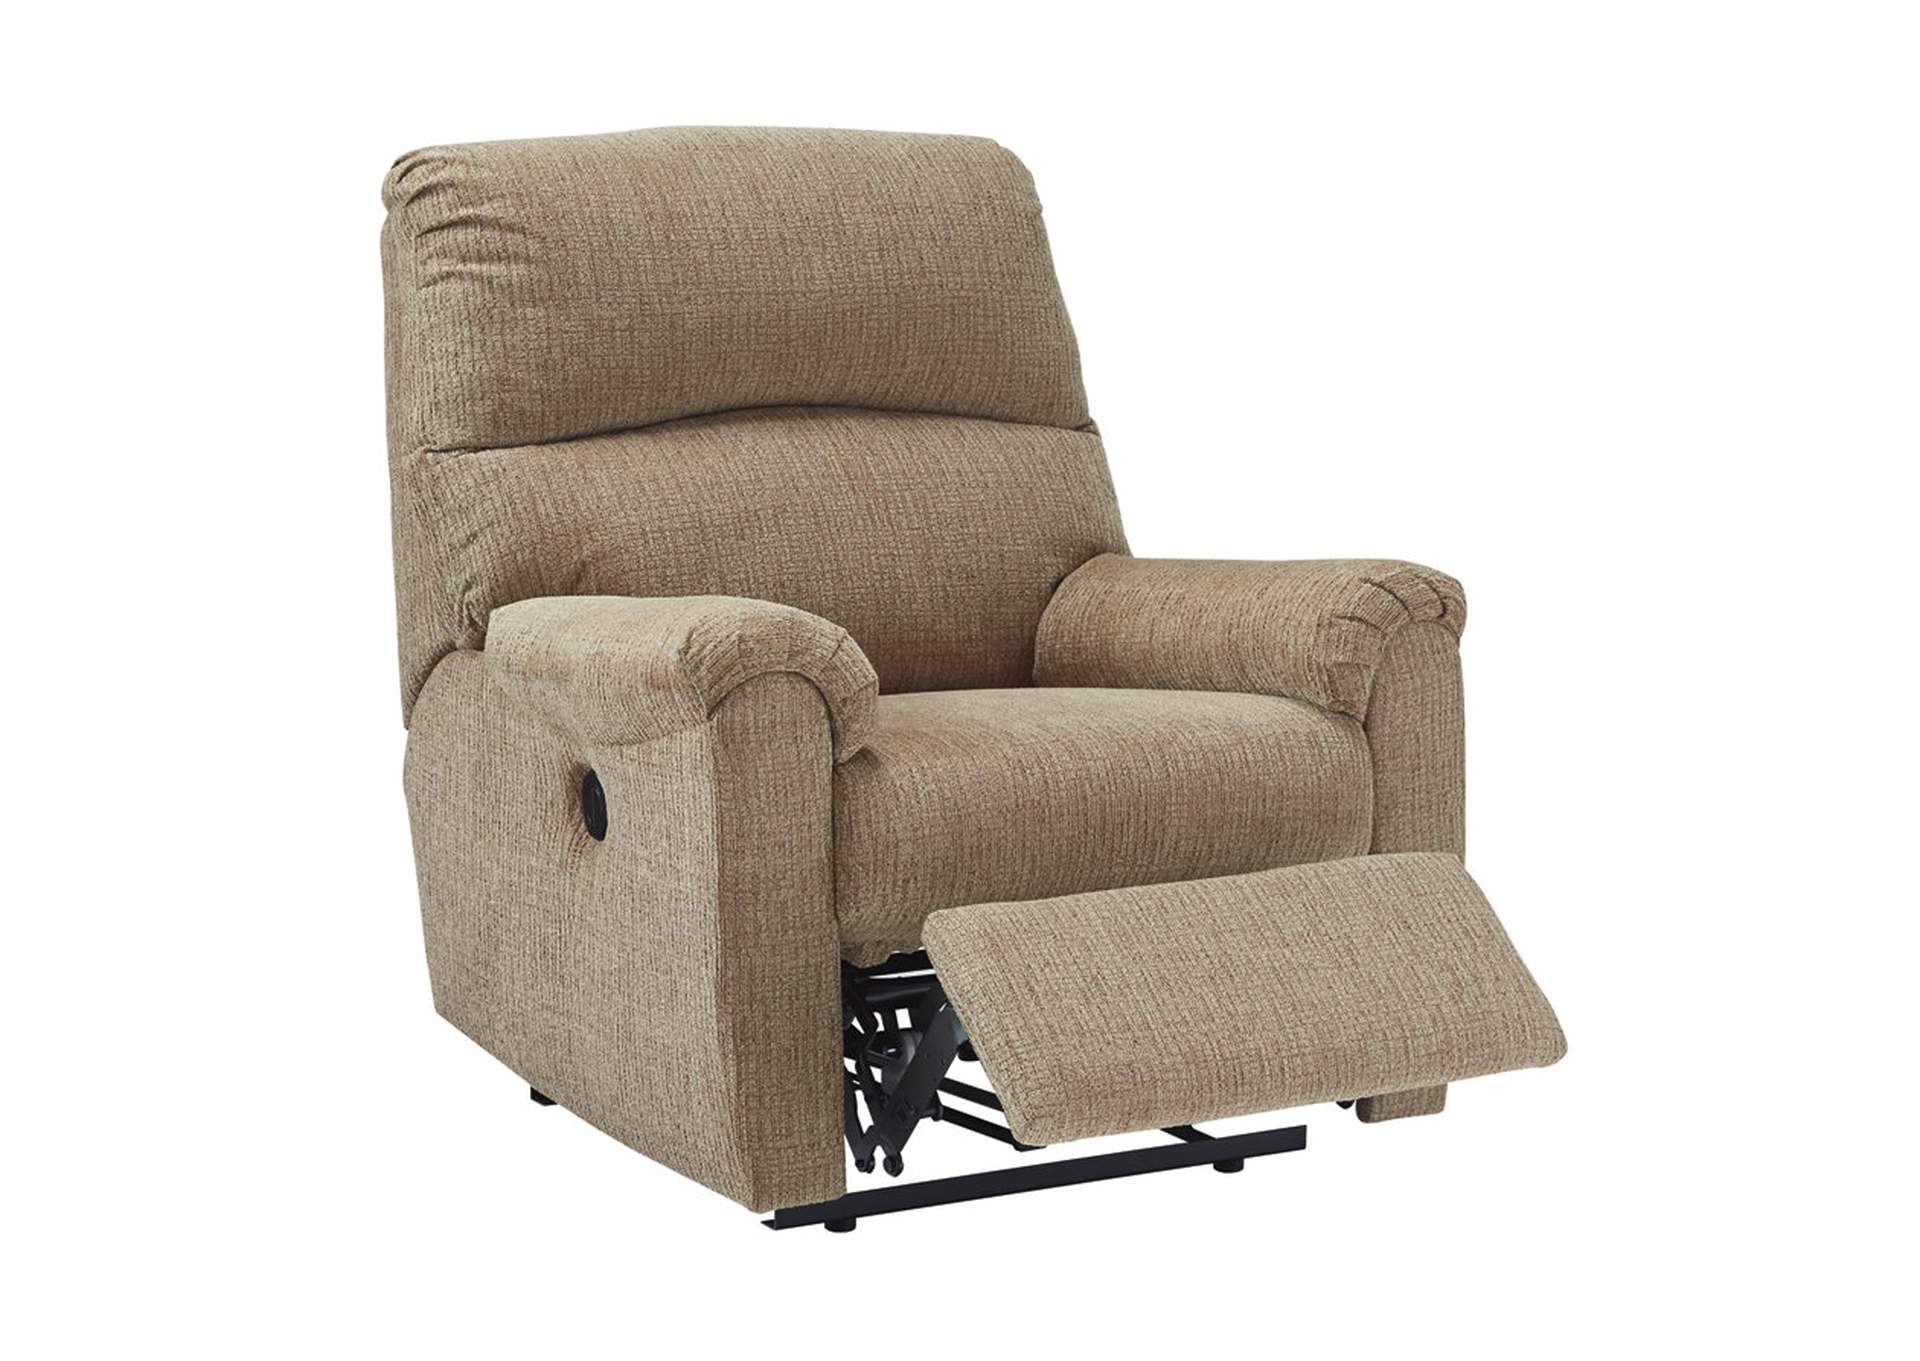 McTeer Mocha Power Recliner,Signature Design By Ashley